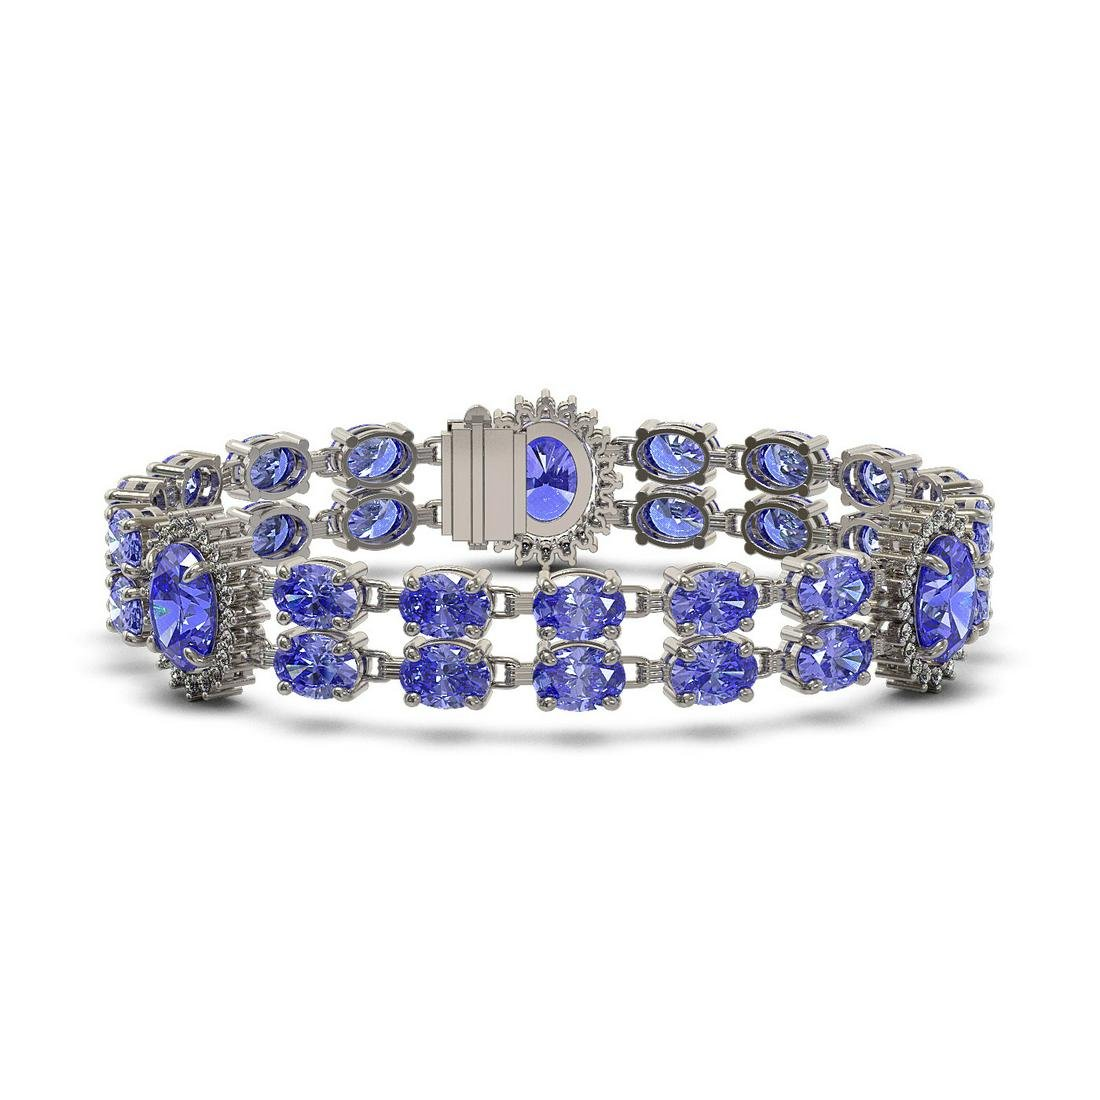 32.77 ctw Tanzanite & Diamond Bracelet 14K White Gold